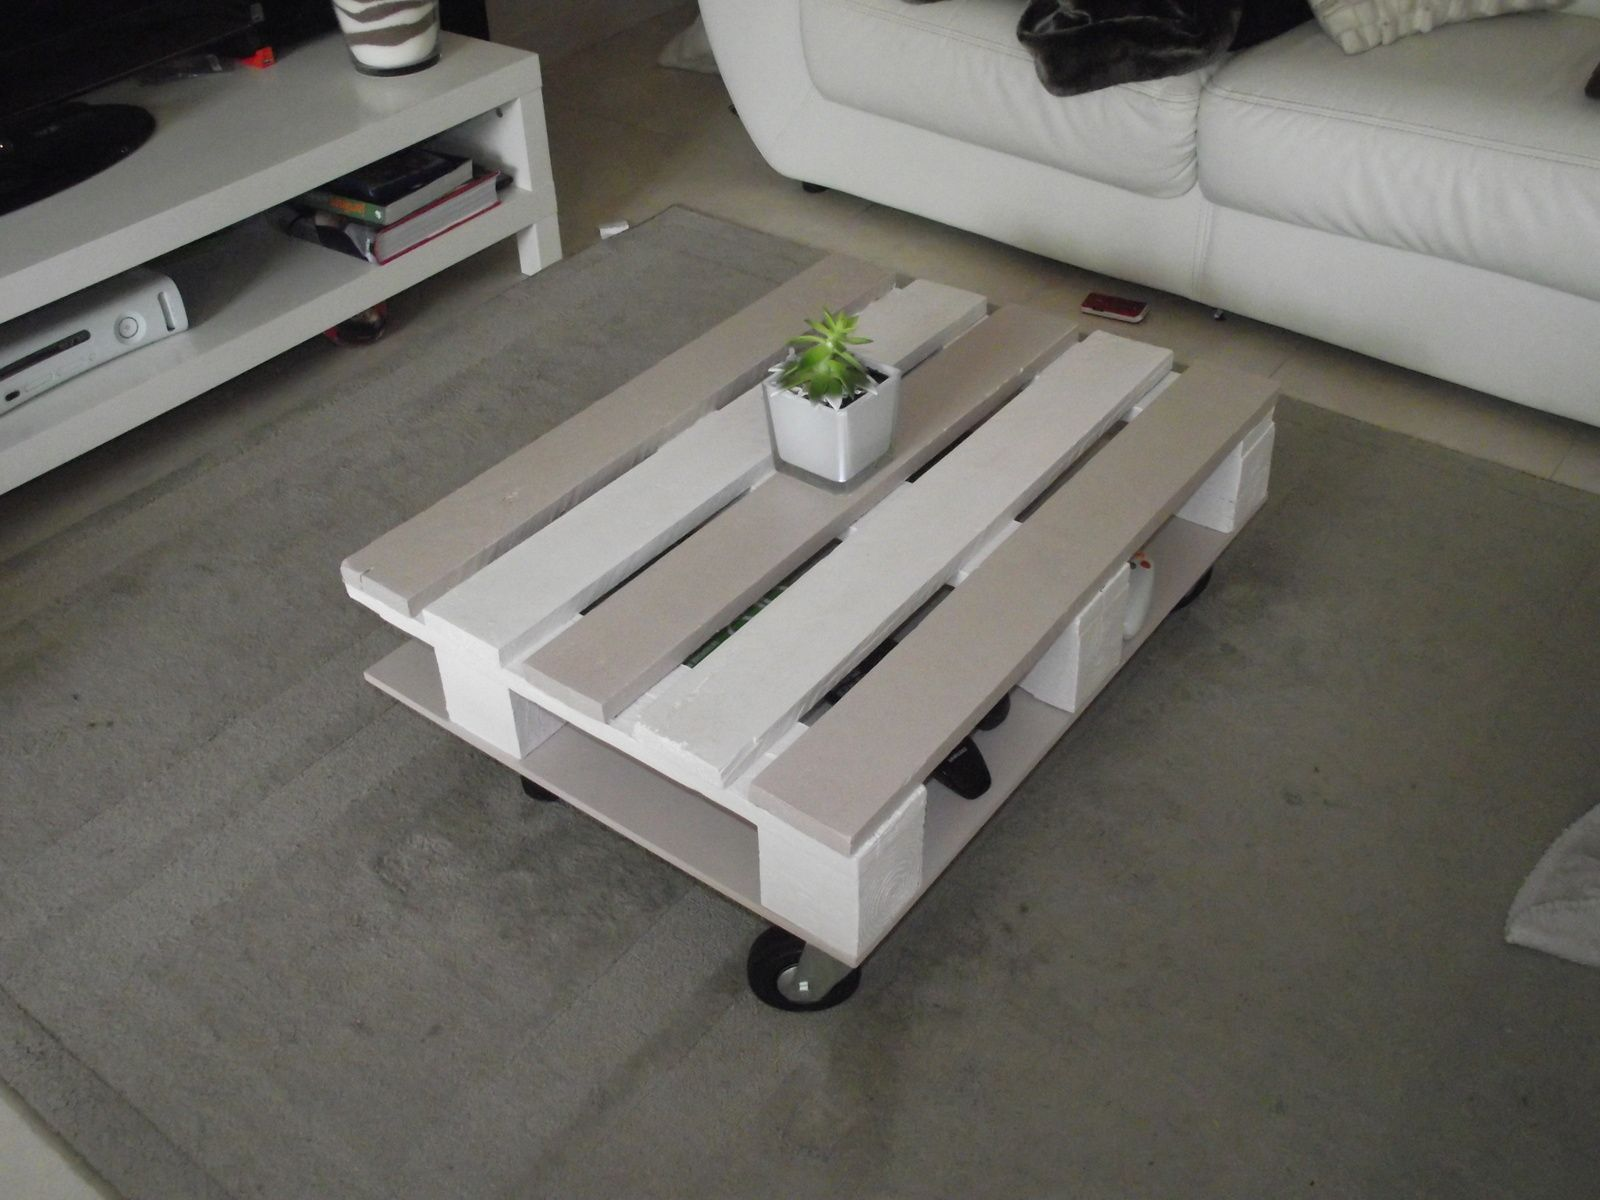 Comment faire une table basse en palette - Comment transformer une palette en table basse ...